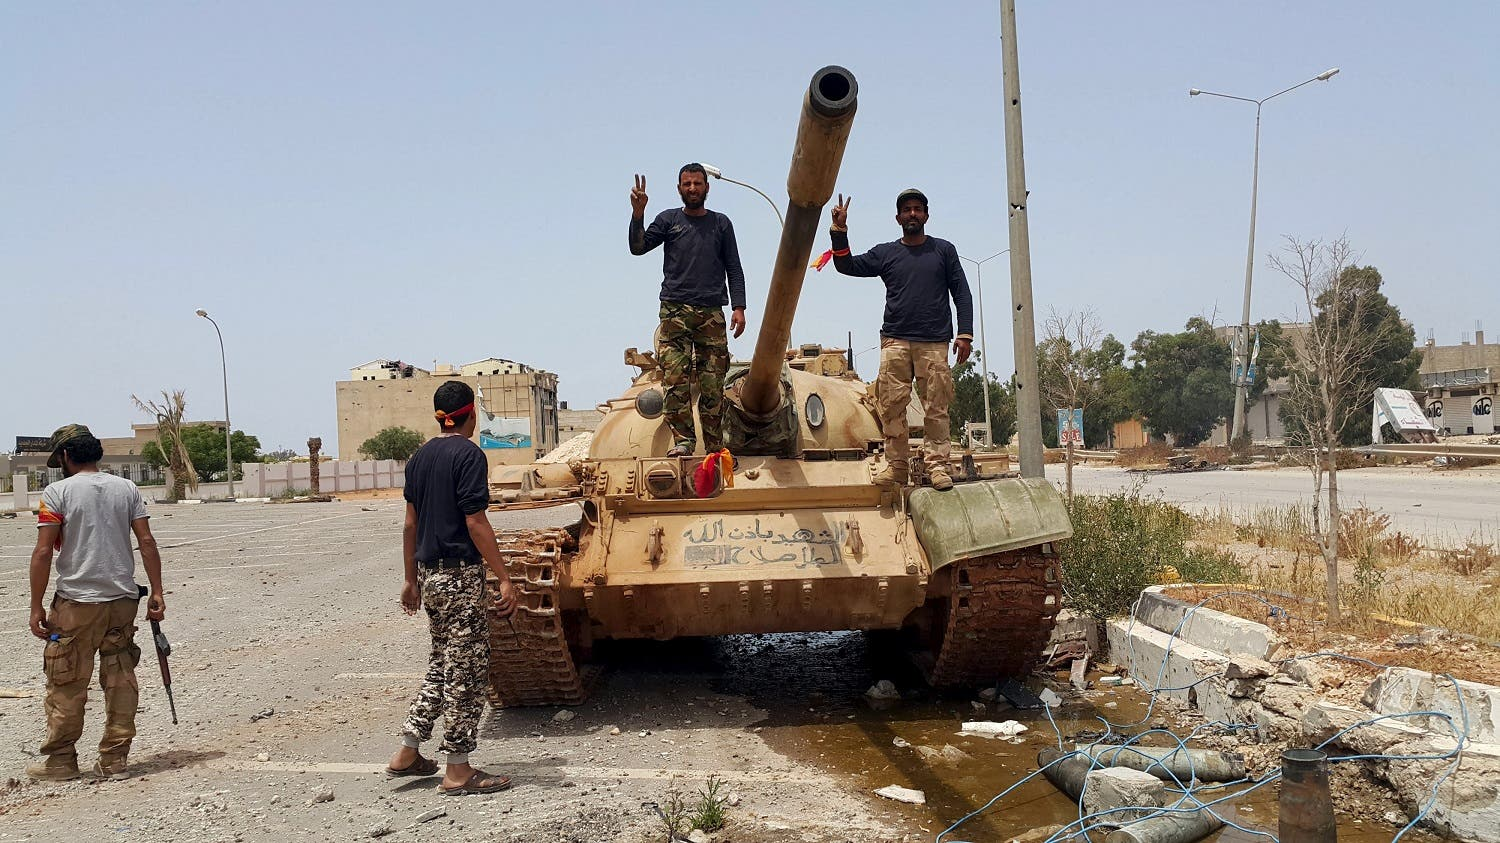 Members of the Libyan pro-government forces gesture as they stand on a tank in Benghazi, Libya, May 21, 2015. (Reuters)